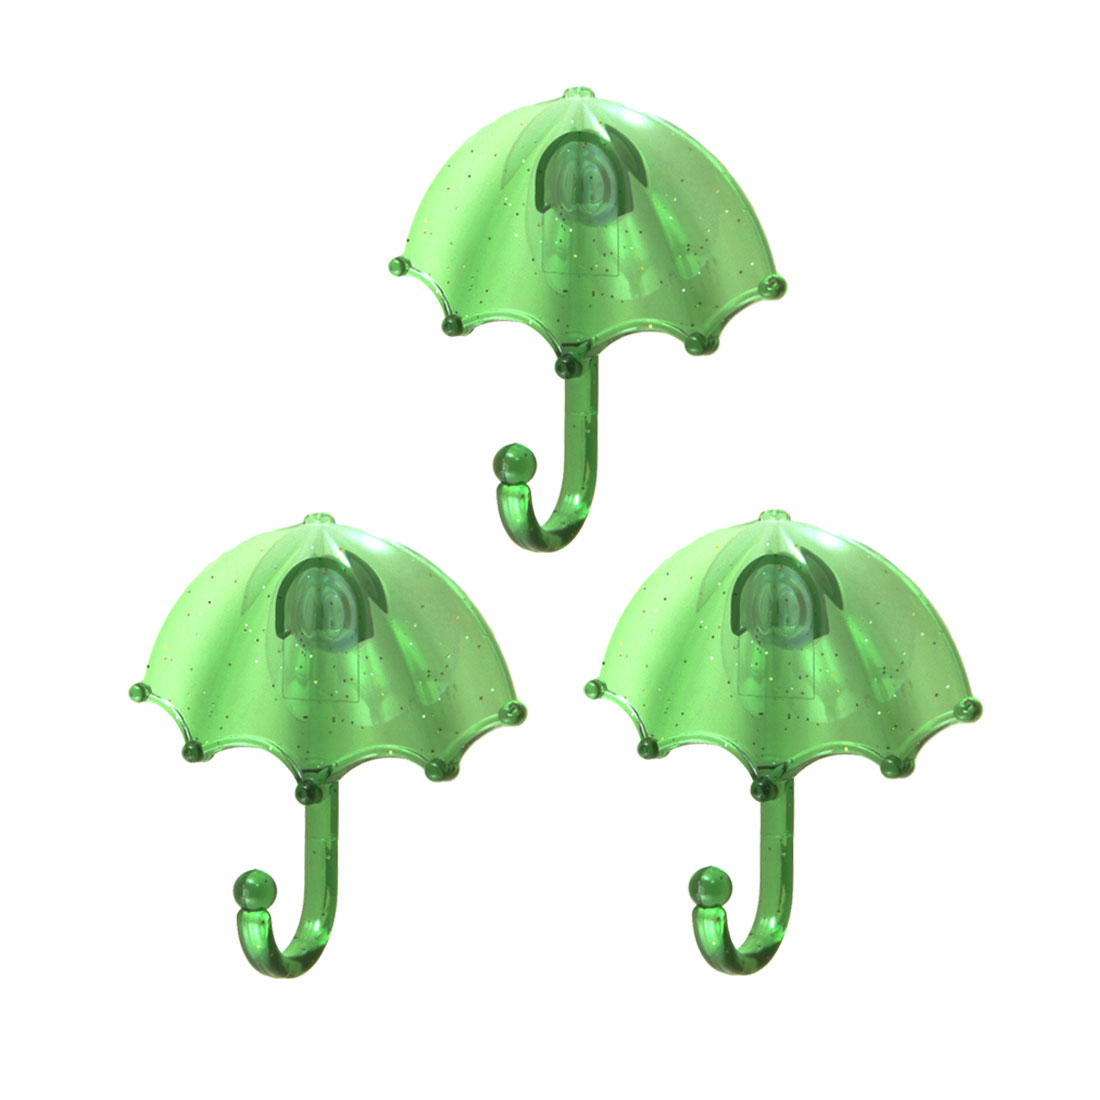 3 Pcs Umberlla Shape Silicone Suction Cup Plastic Hooks Clear Green